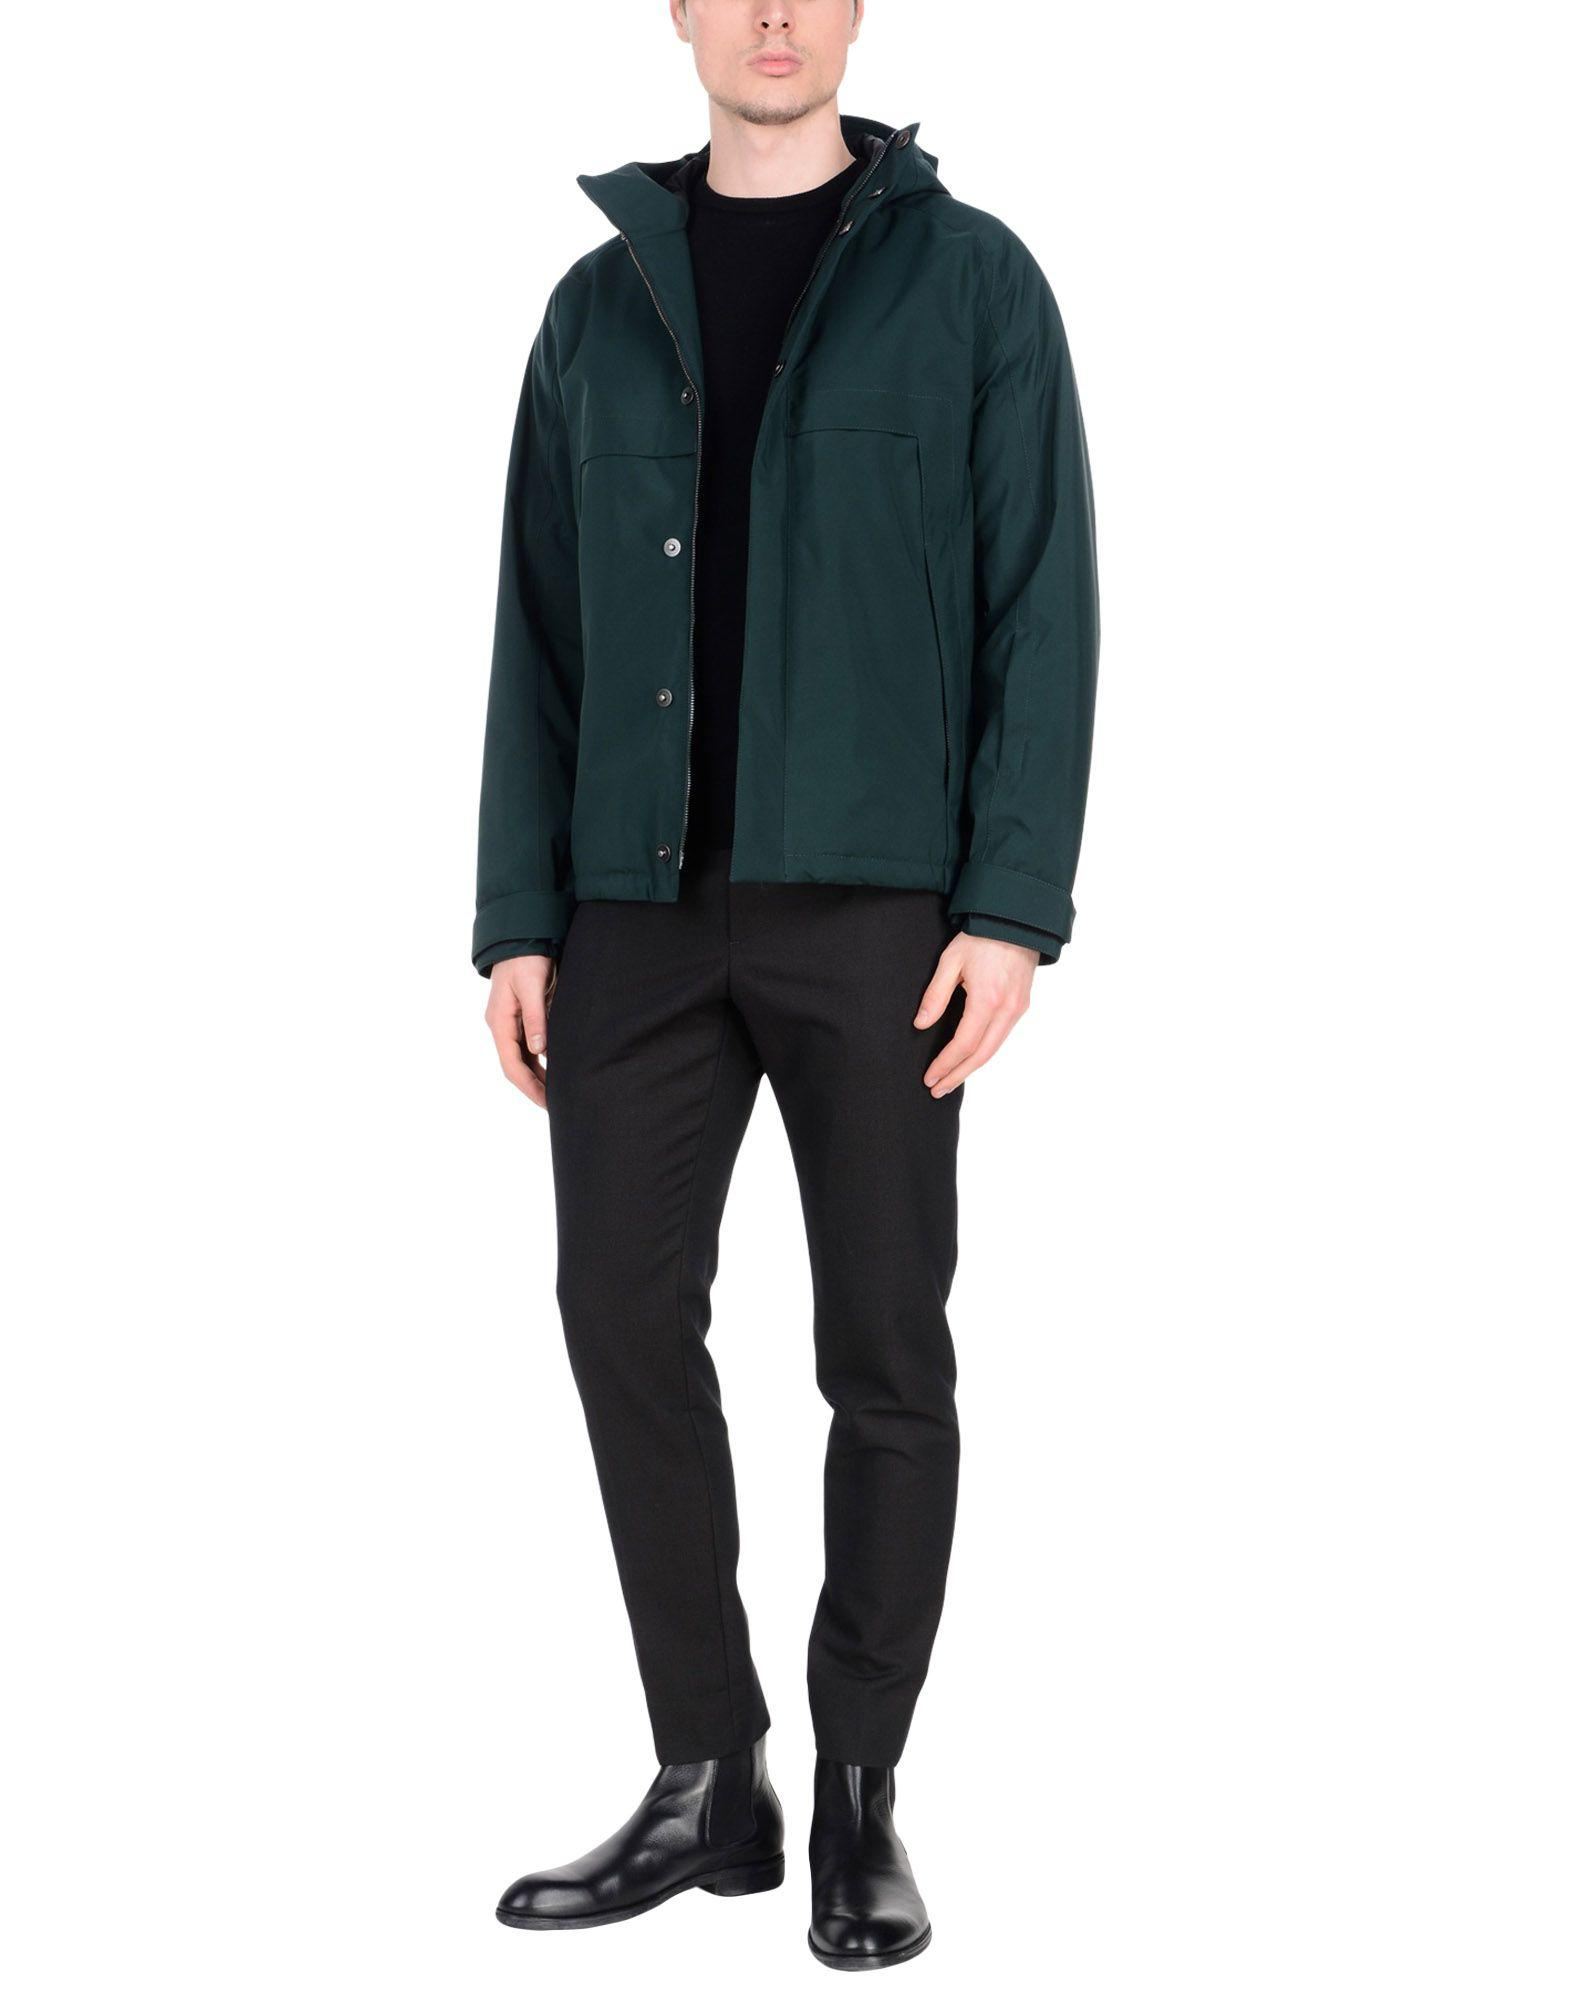 Prada Synthetic Jacket in Green for Men